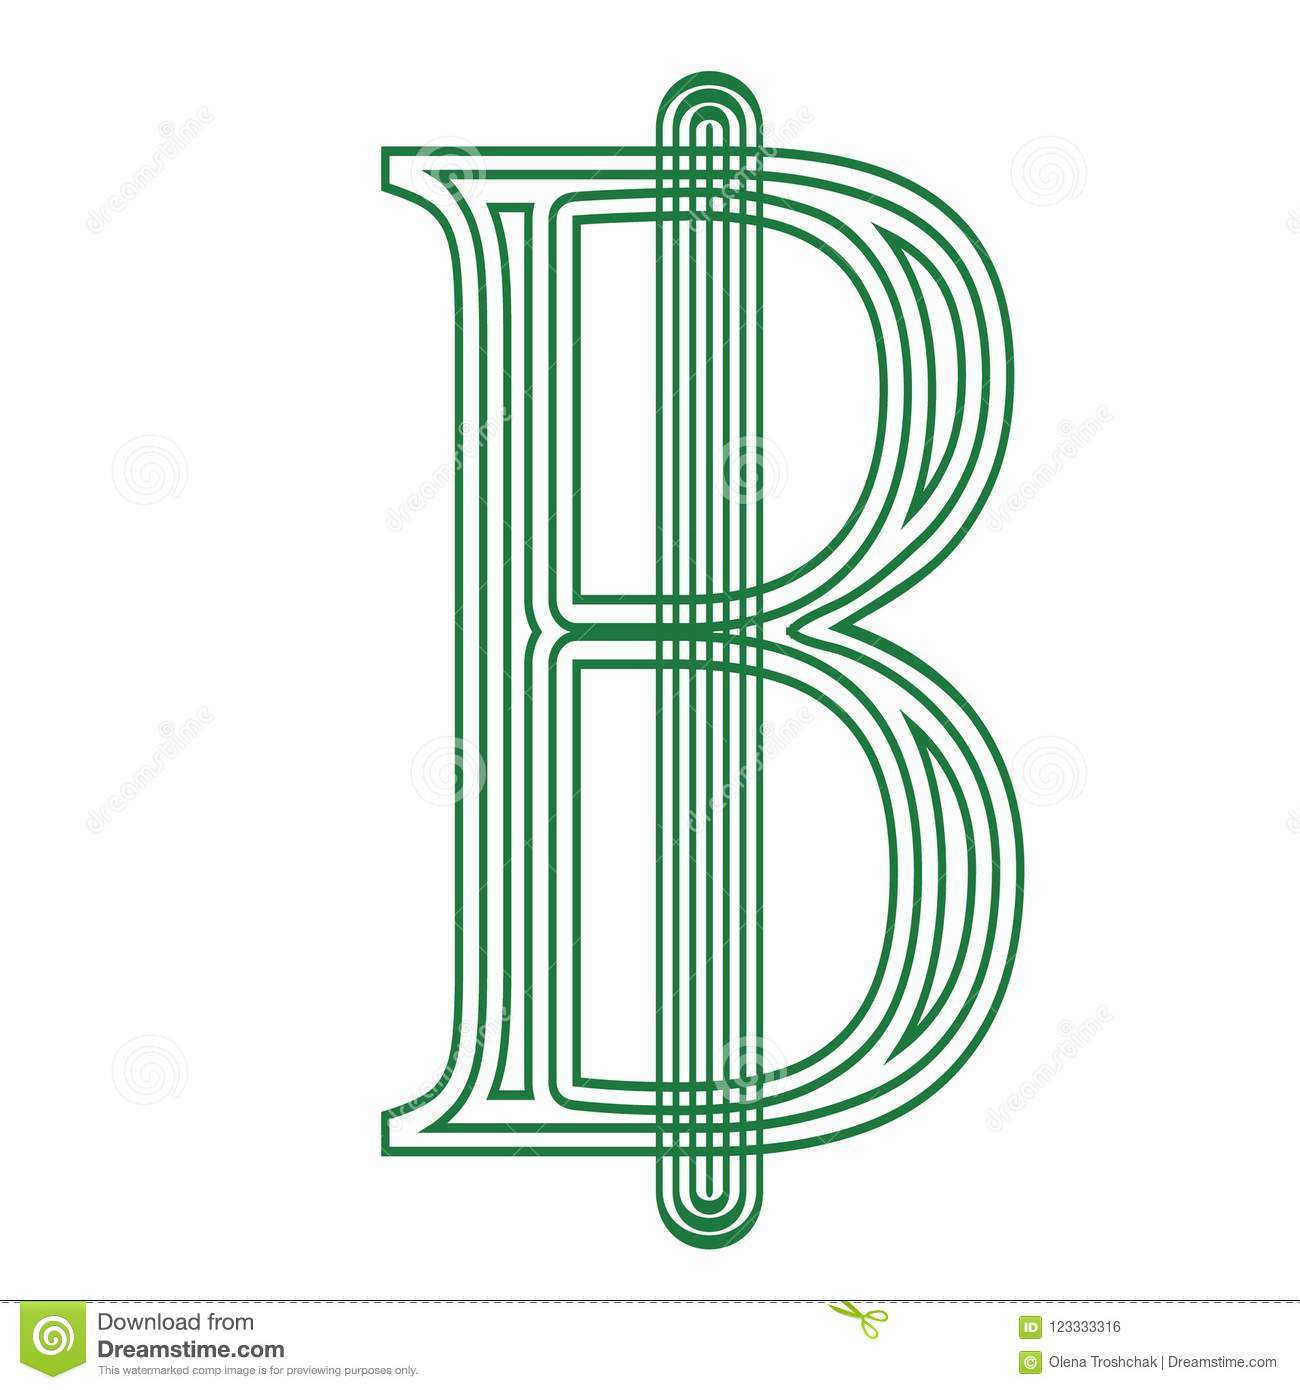 Thai Baht Thailand Currency Symbol Icon Striped Vector Illustration